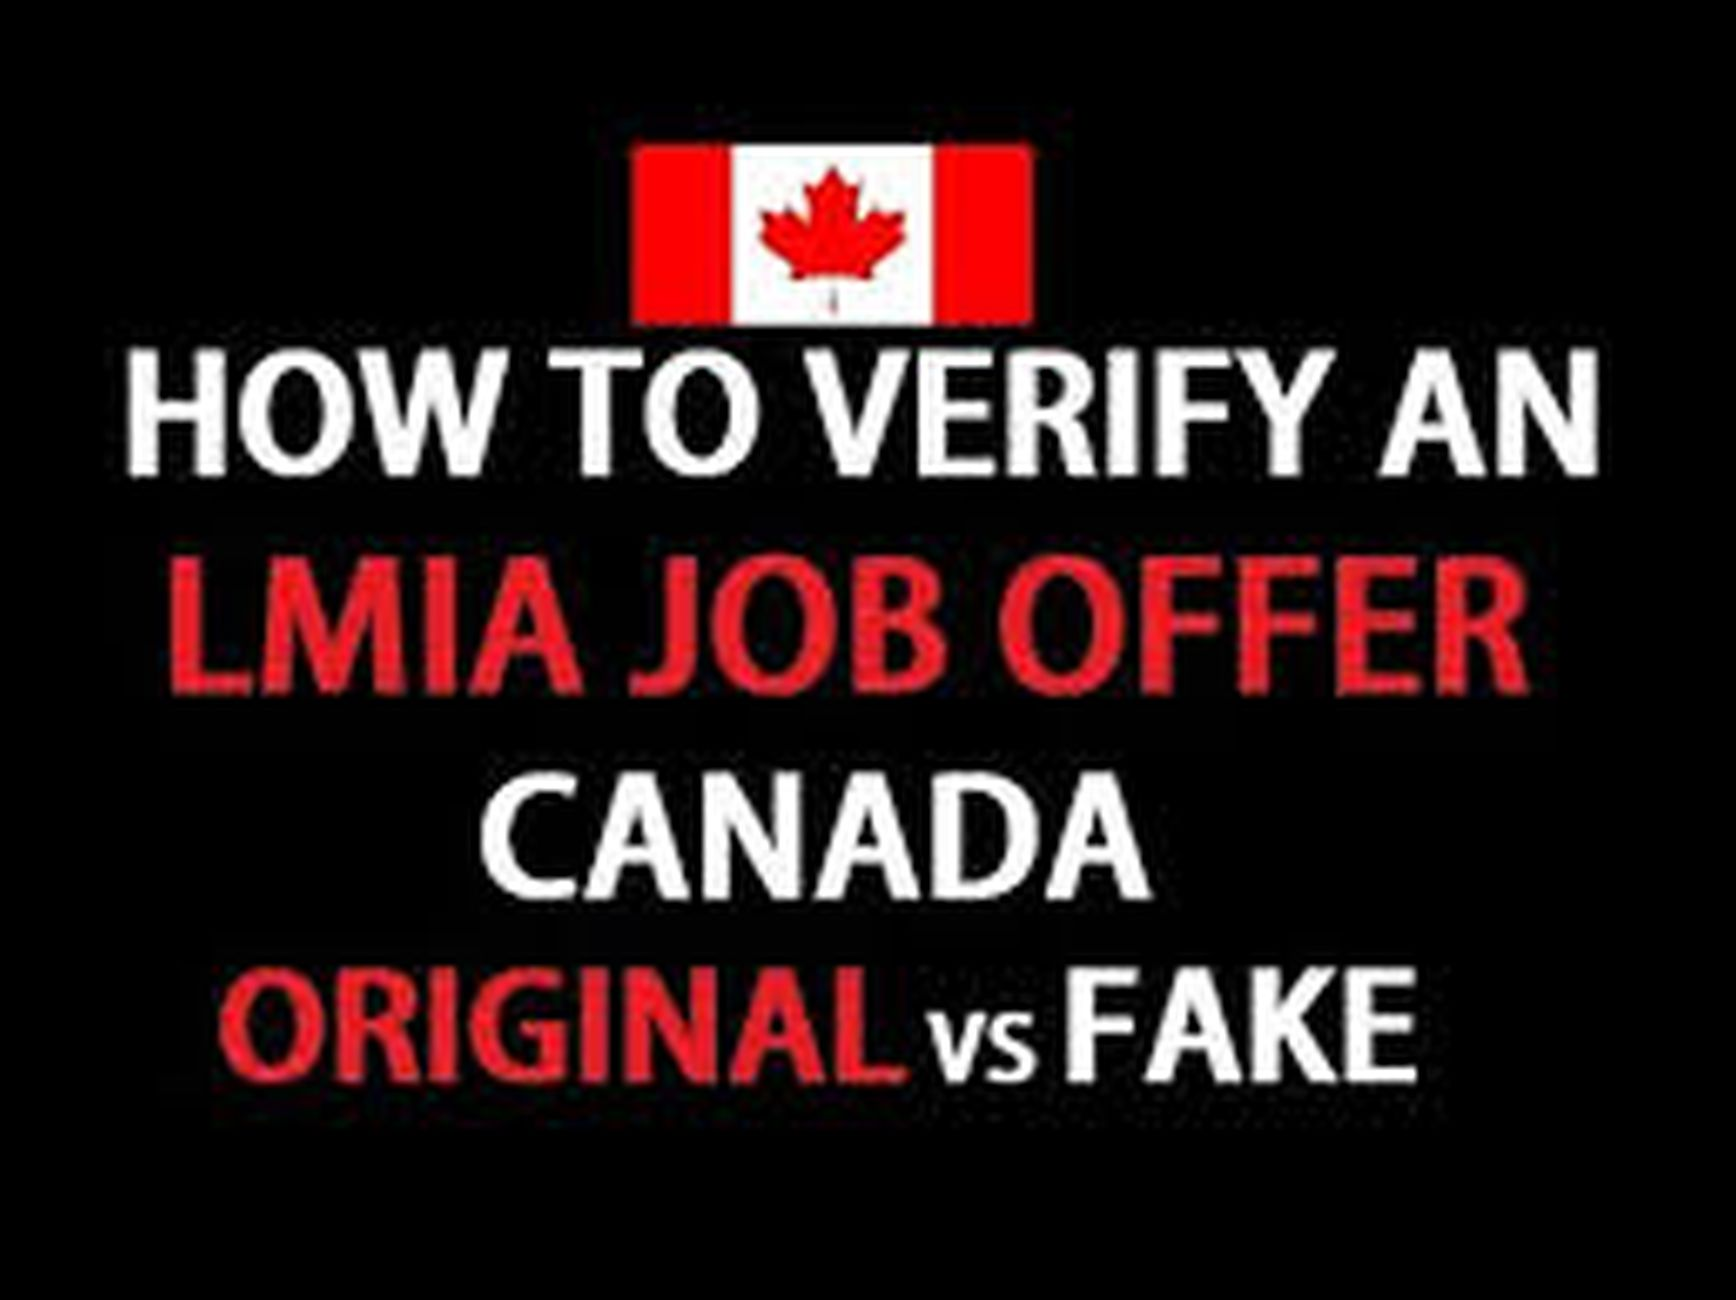 Verify the Authenticity of the LMIA